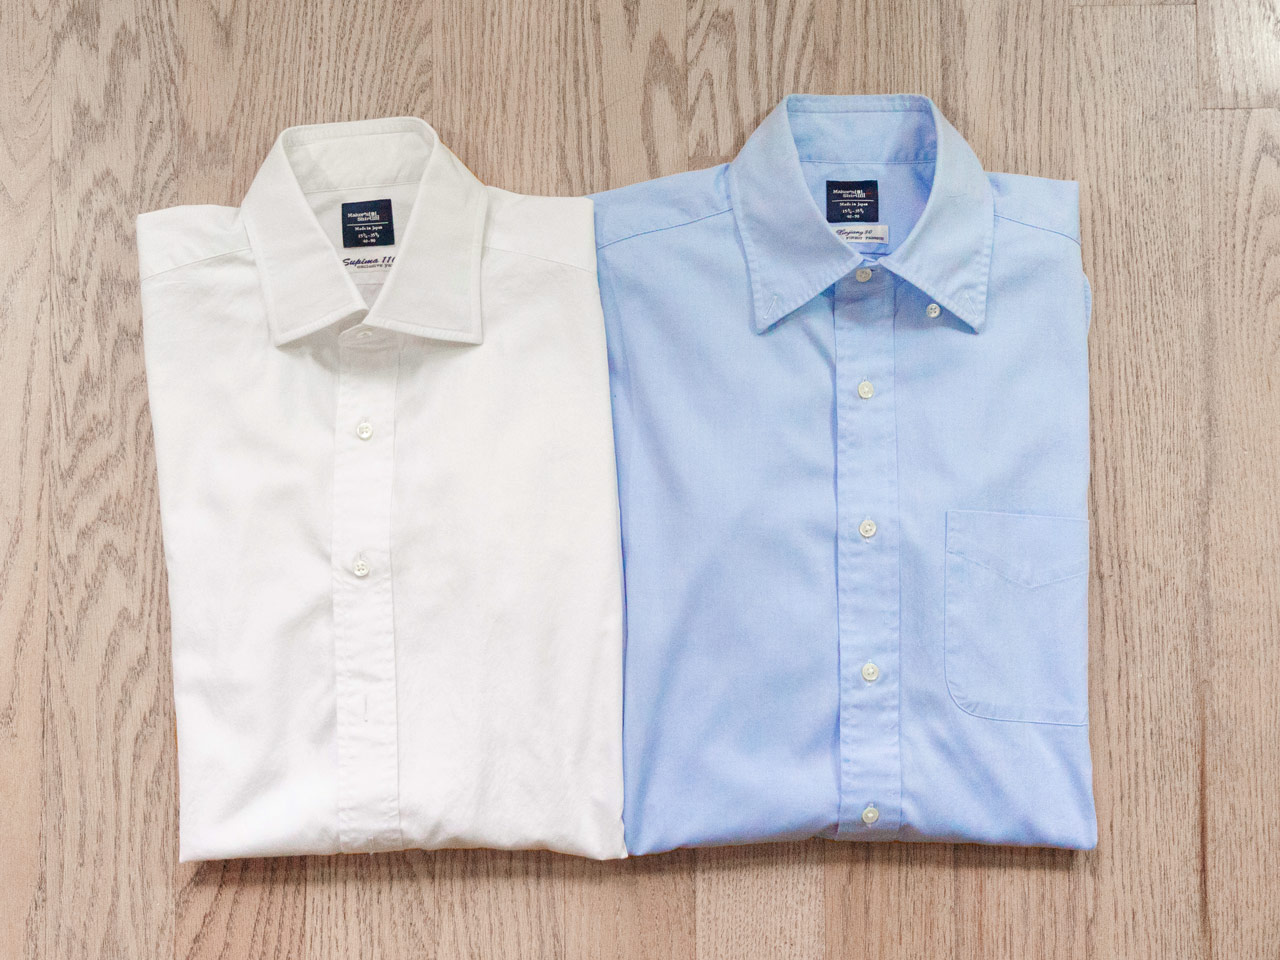 effortless essentials minimalist wardrobe - dress shirts